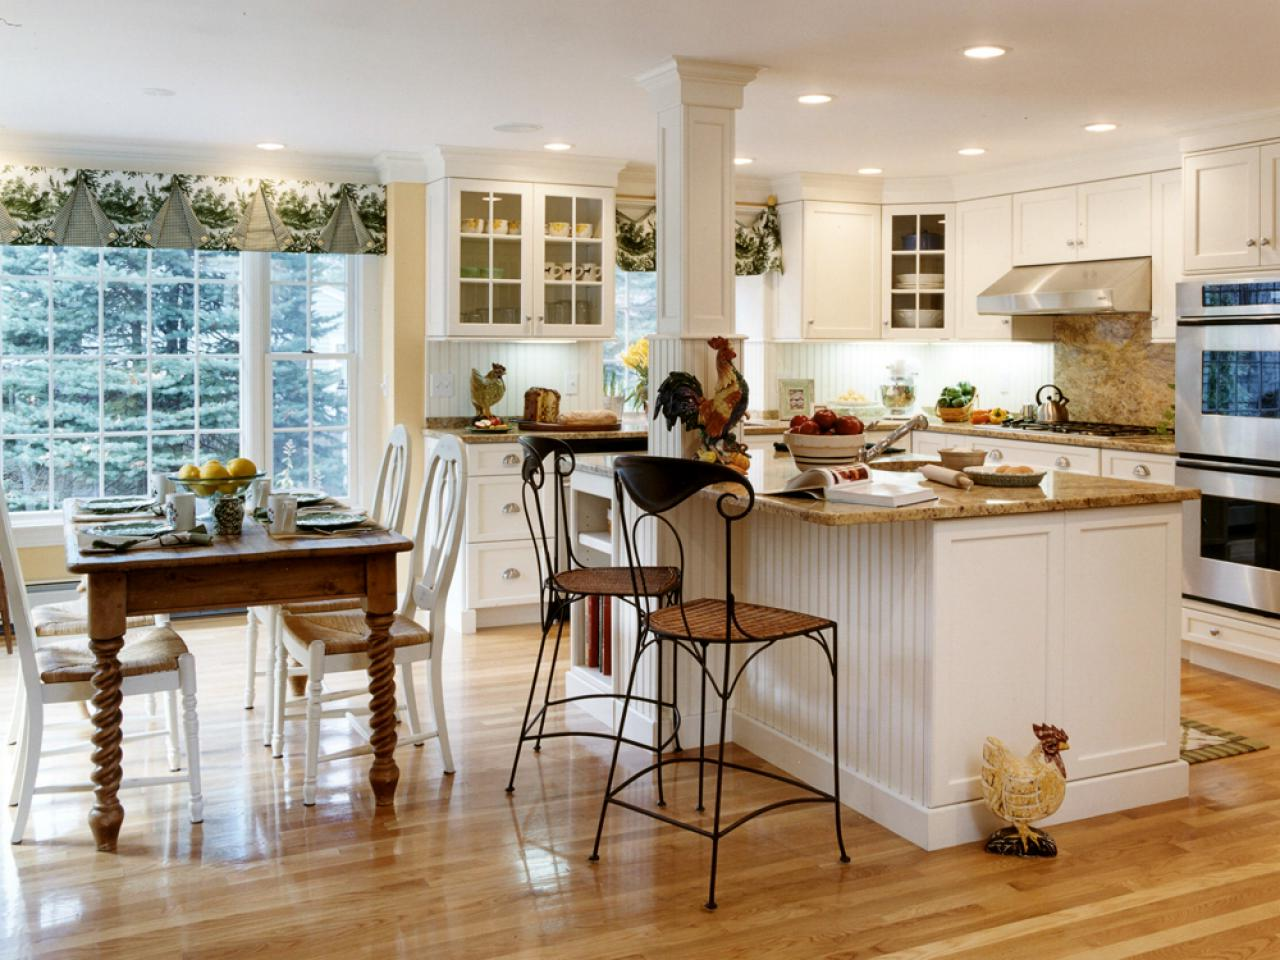 kitchen design images kitchen in country style with wooden floors wooden table - Country Style Kitchen Designs